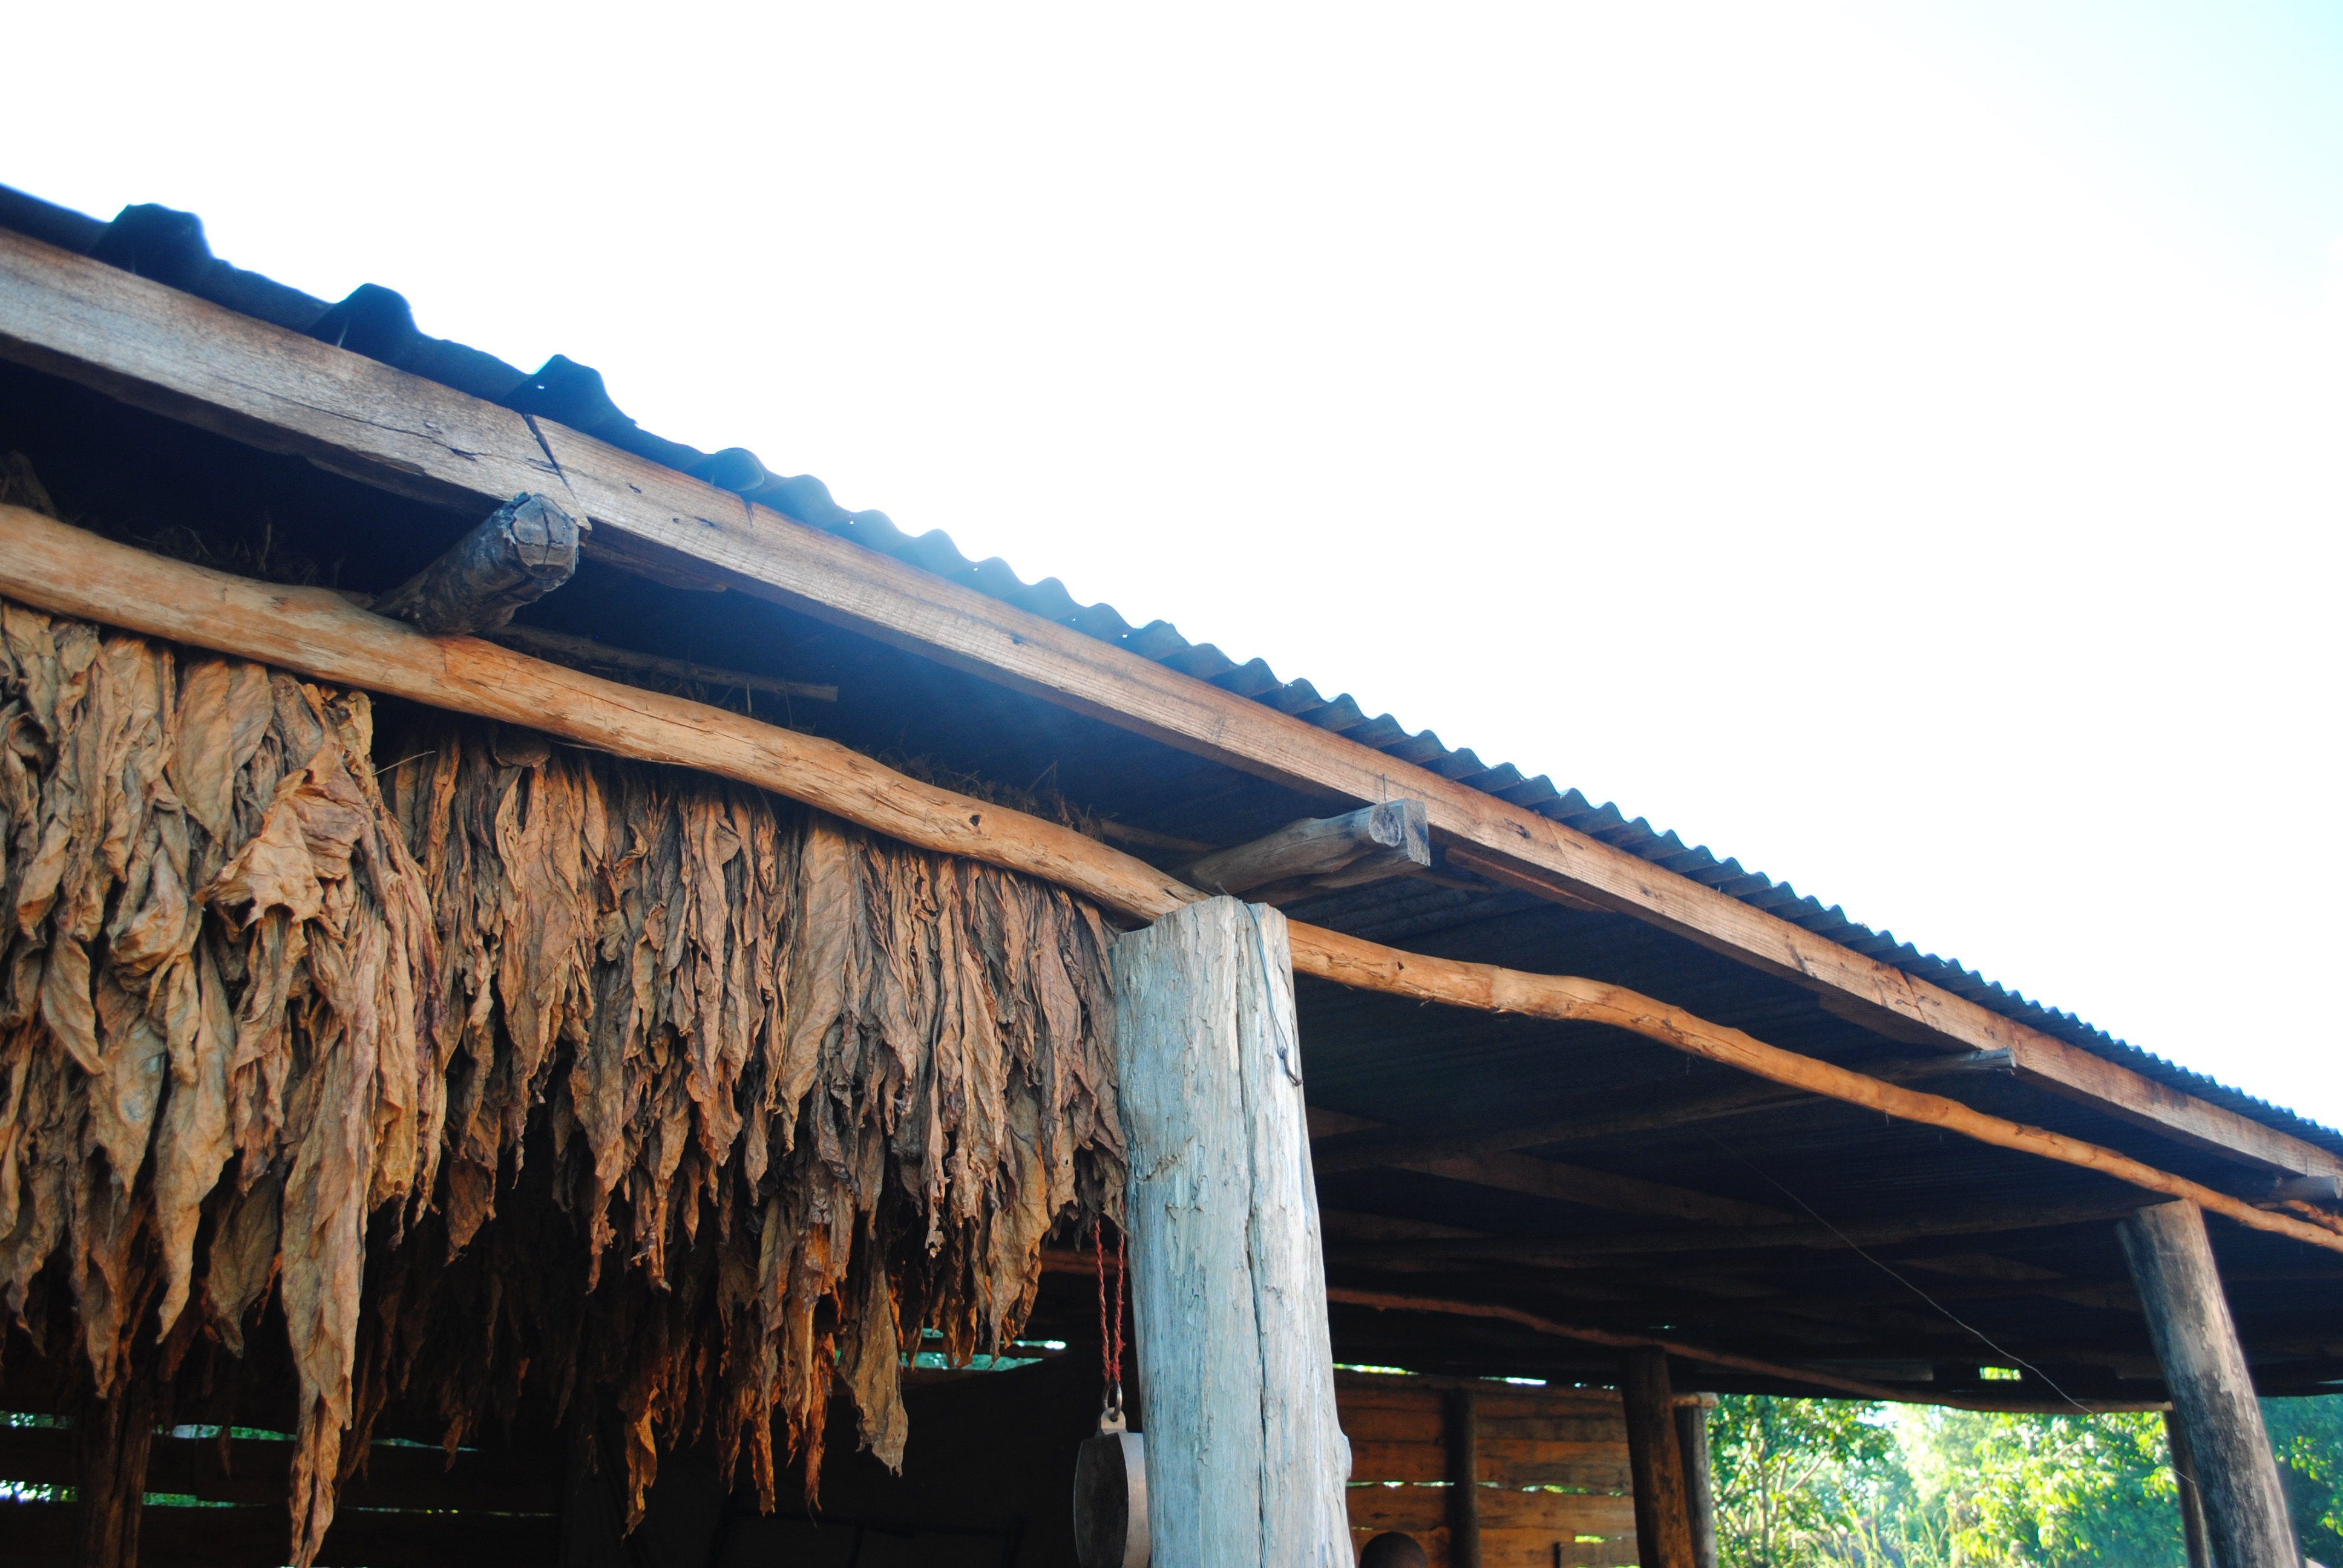 tobacco hanging to dry in Malawi, 2012